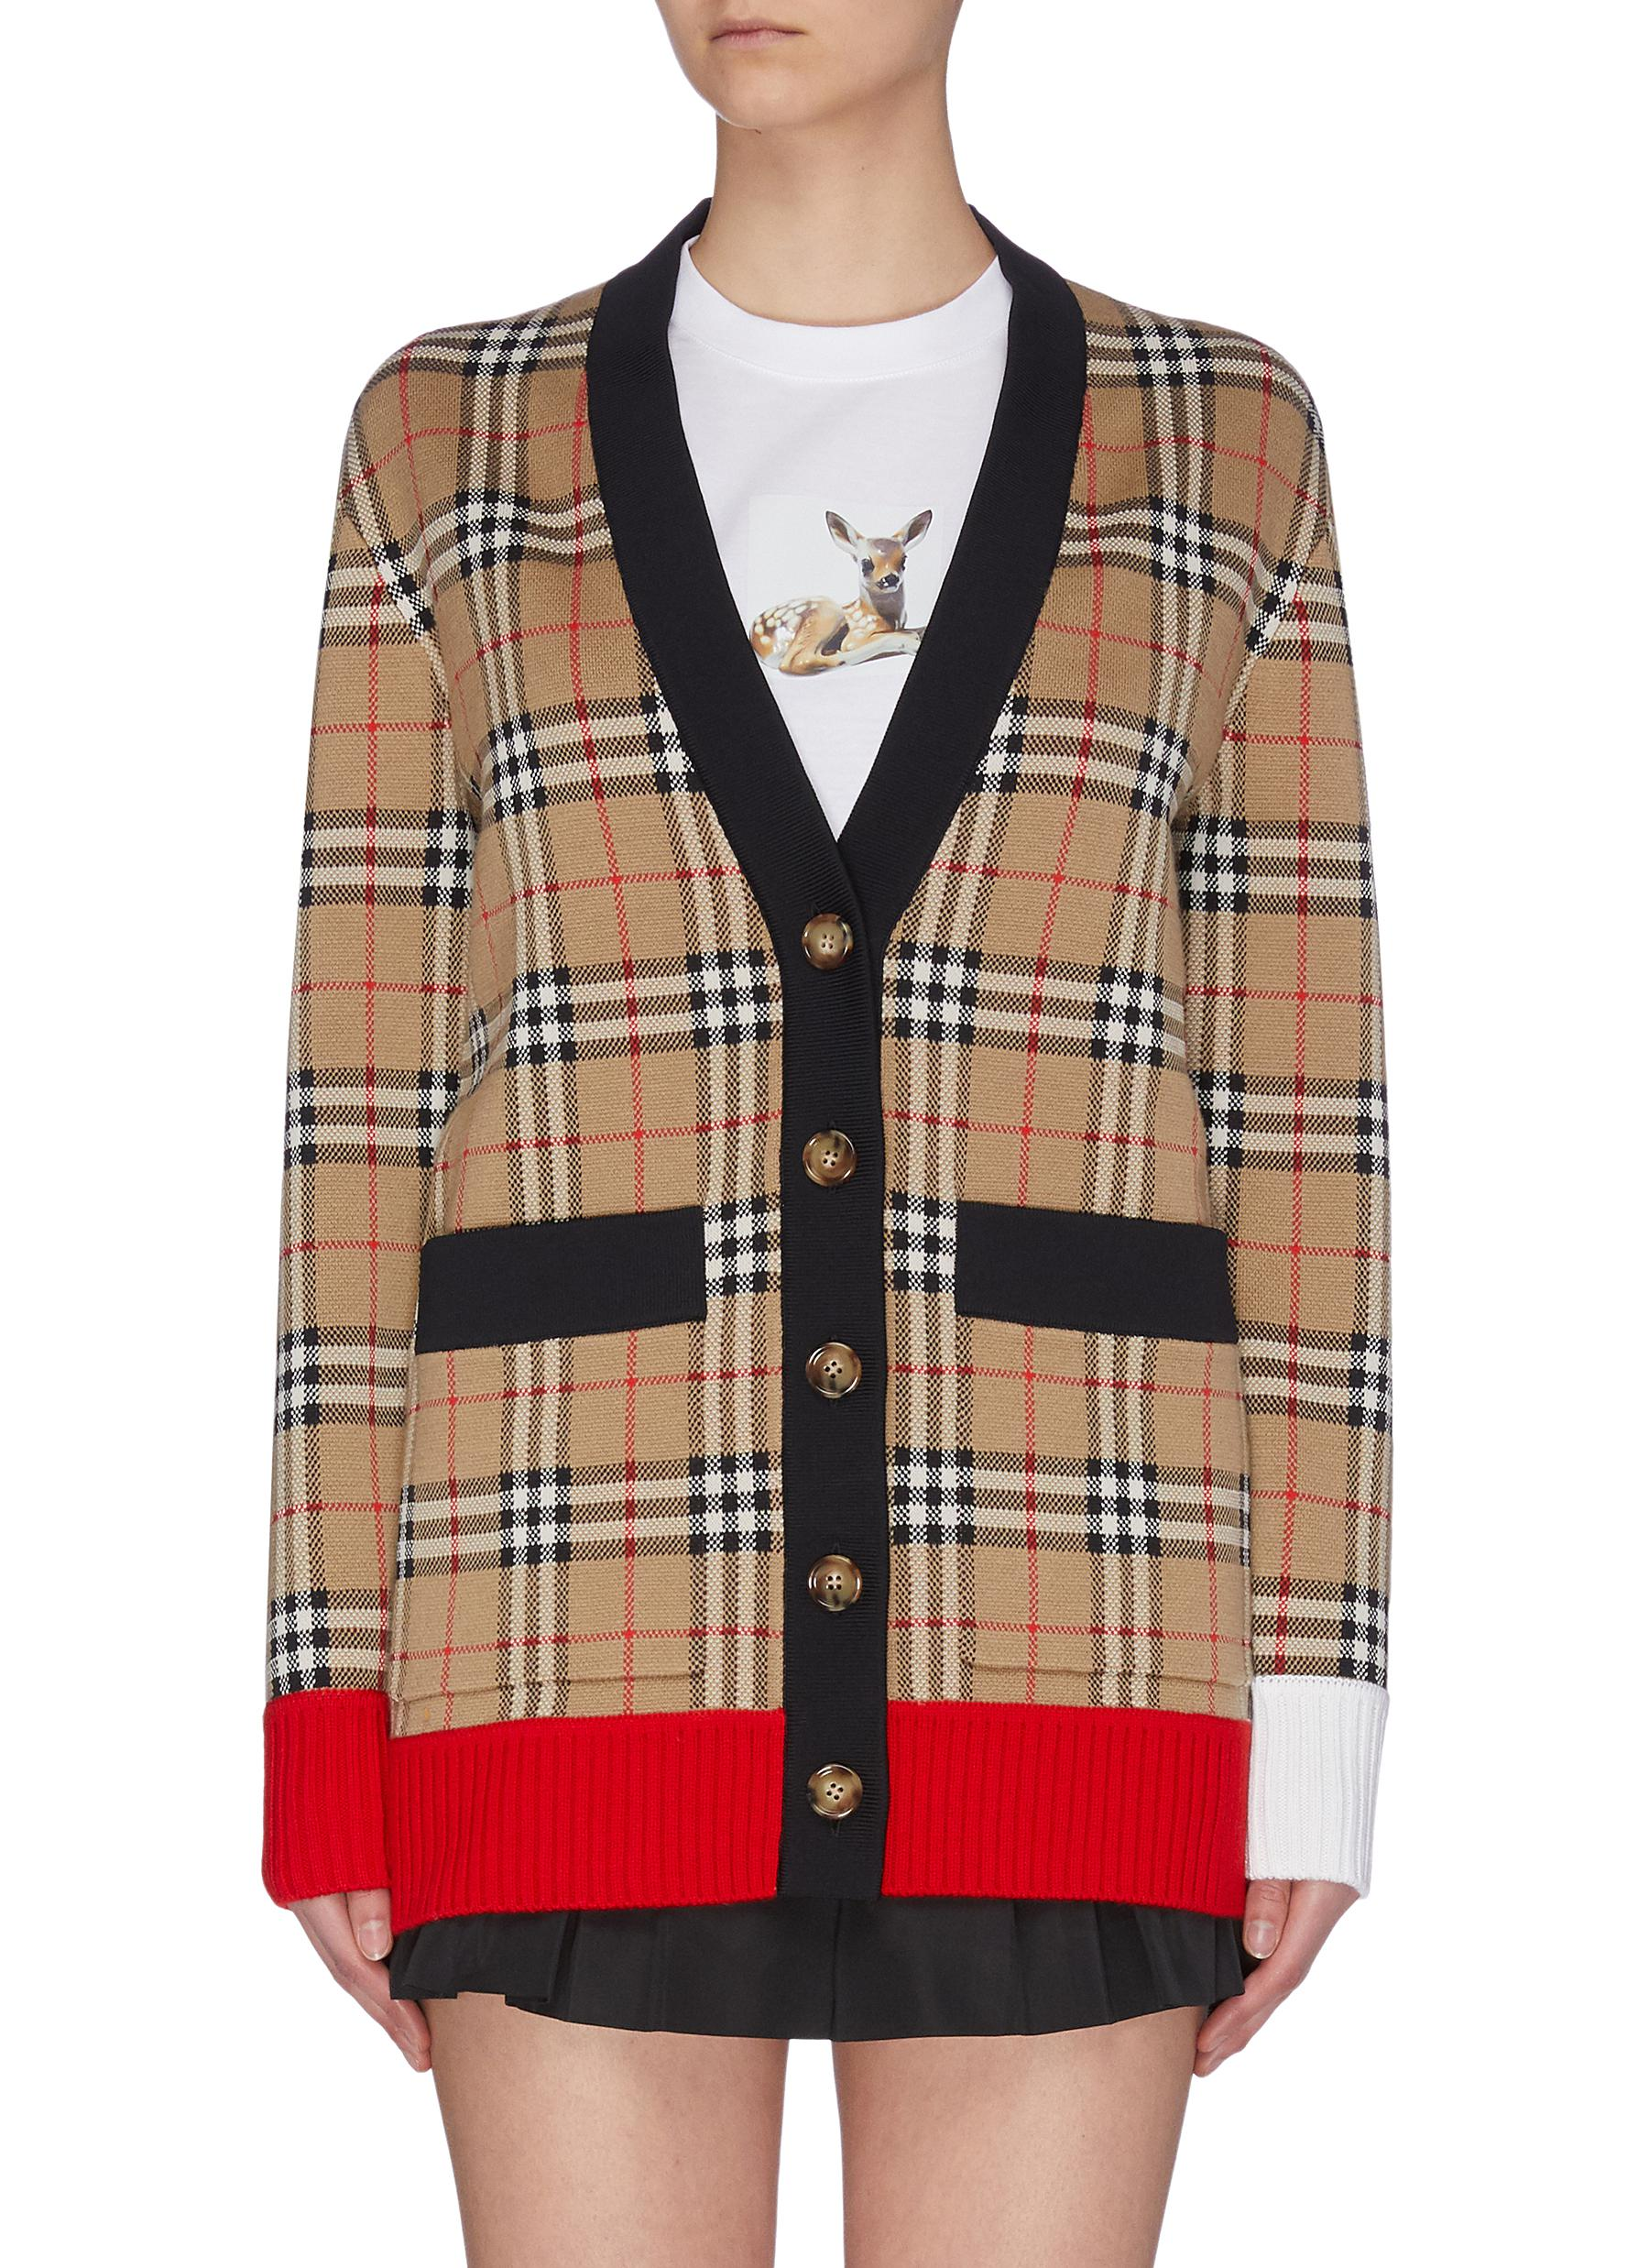 Buy Burberry Knitwear 'Archive' colourblock check cardigan